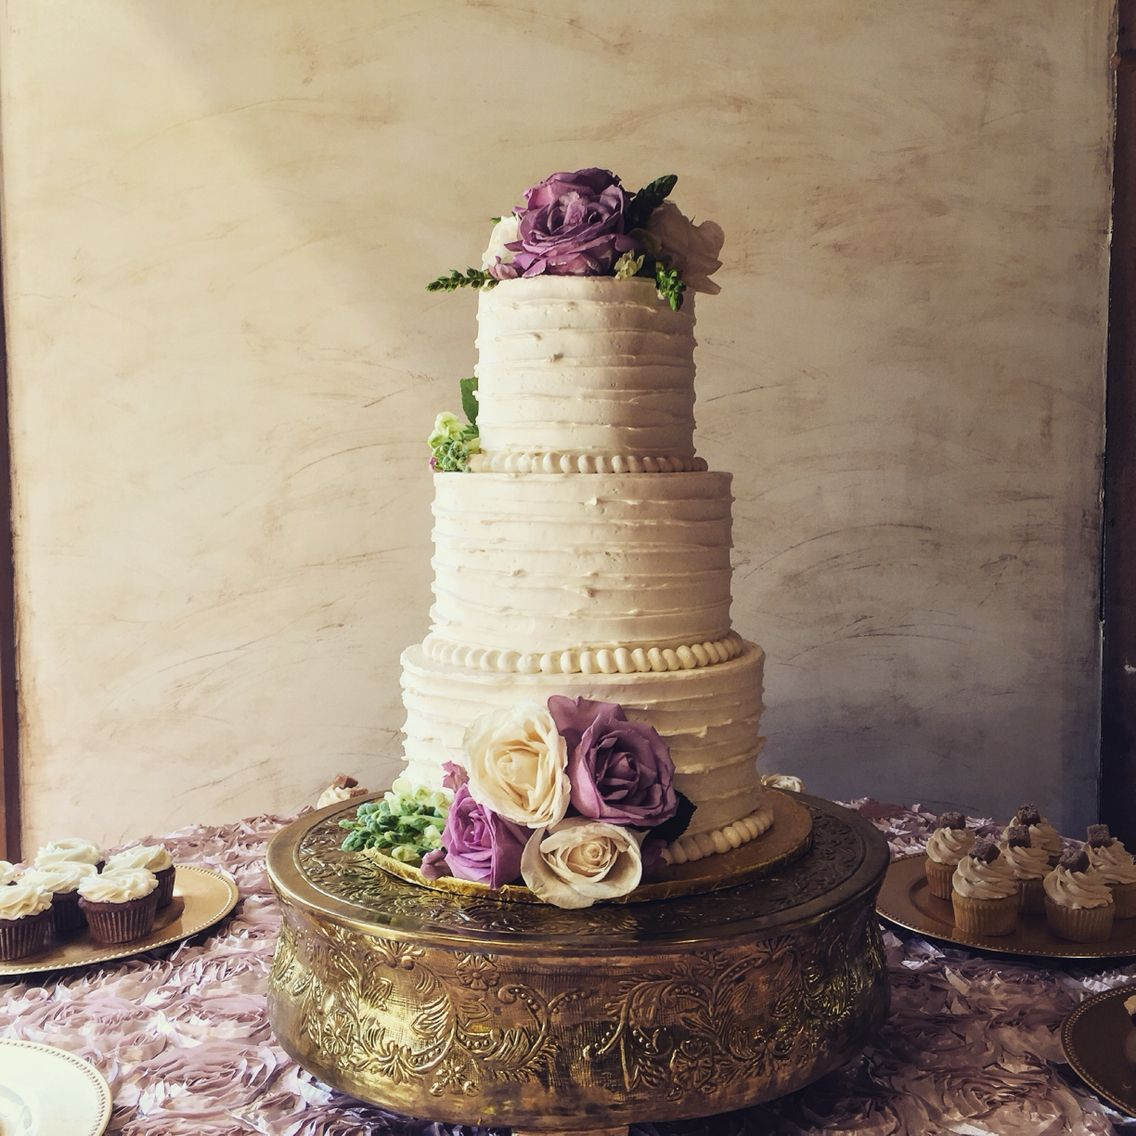 Fresh Flowers On The Wedding Cake Make It Pop Gold Accents By Cakeview Llc Venue Bella Rose Plantation In Lynchburg Va